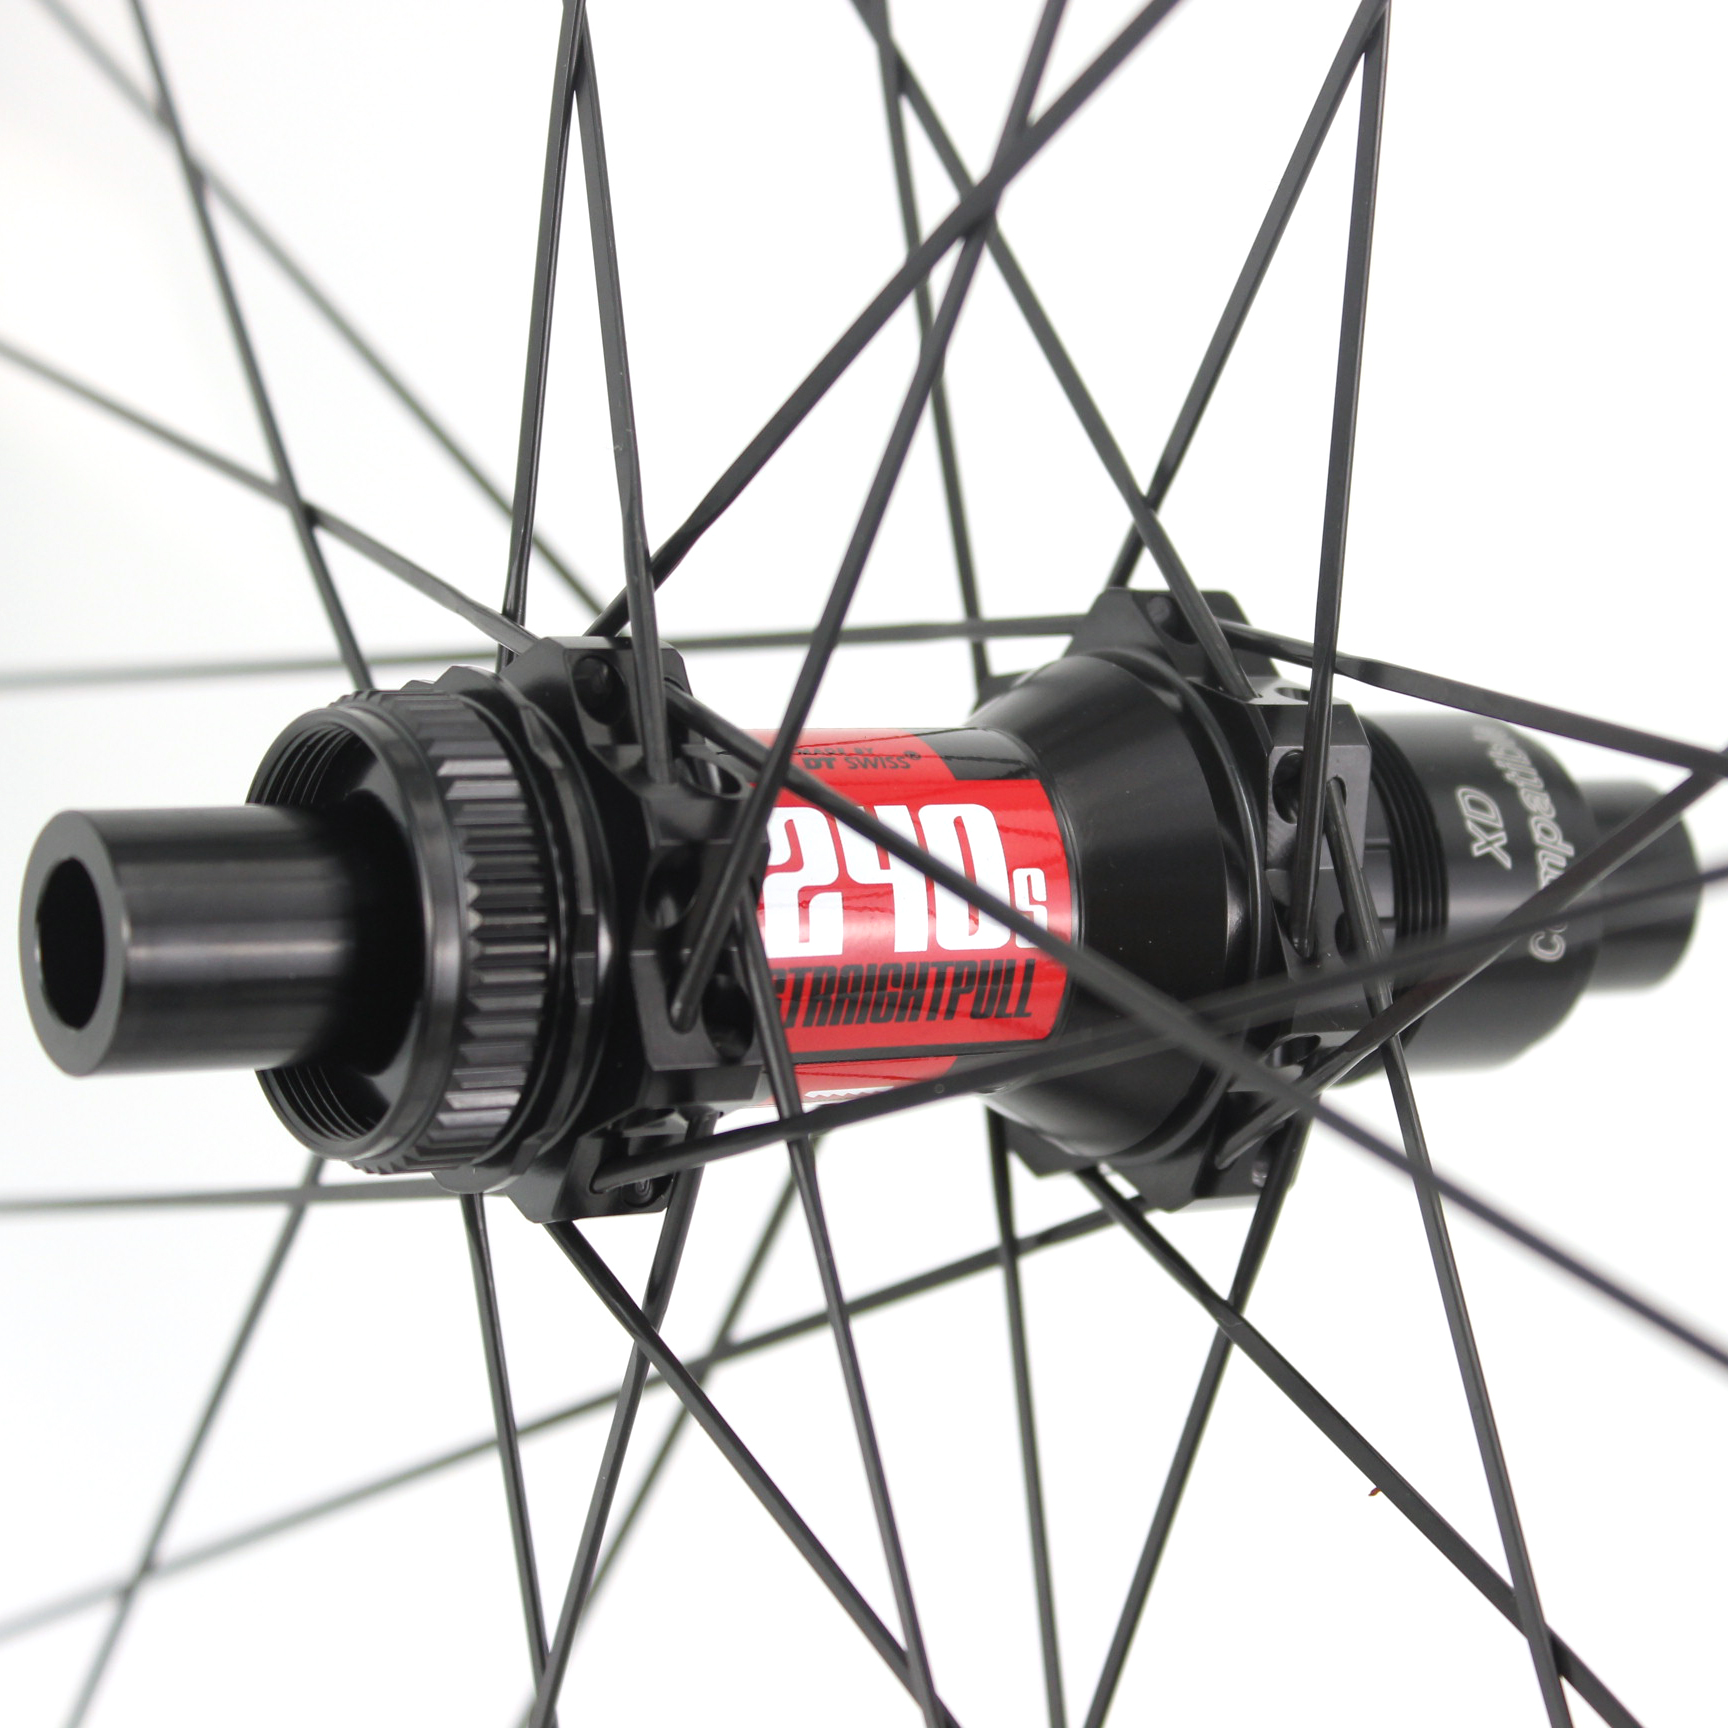 700c carbon 29er mountain bike wheels clincher or tubular wheels 32\32 holes cross-country bicycle 28.61mm width